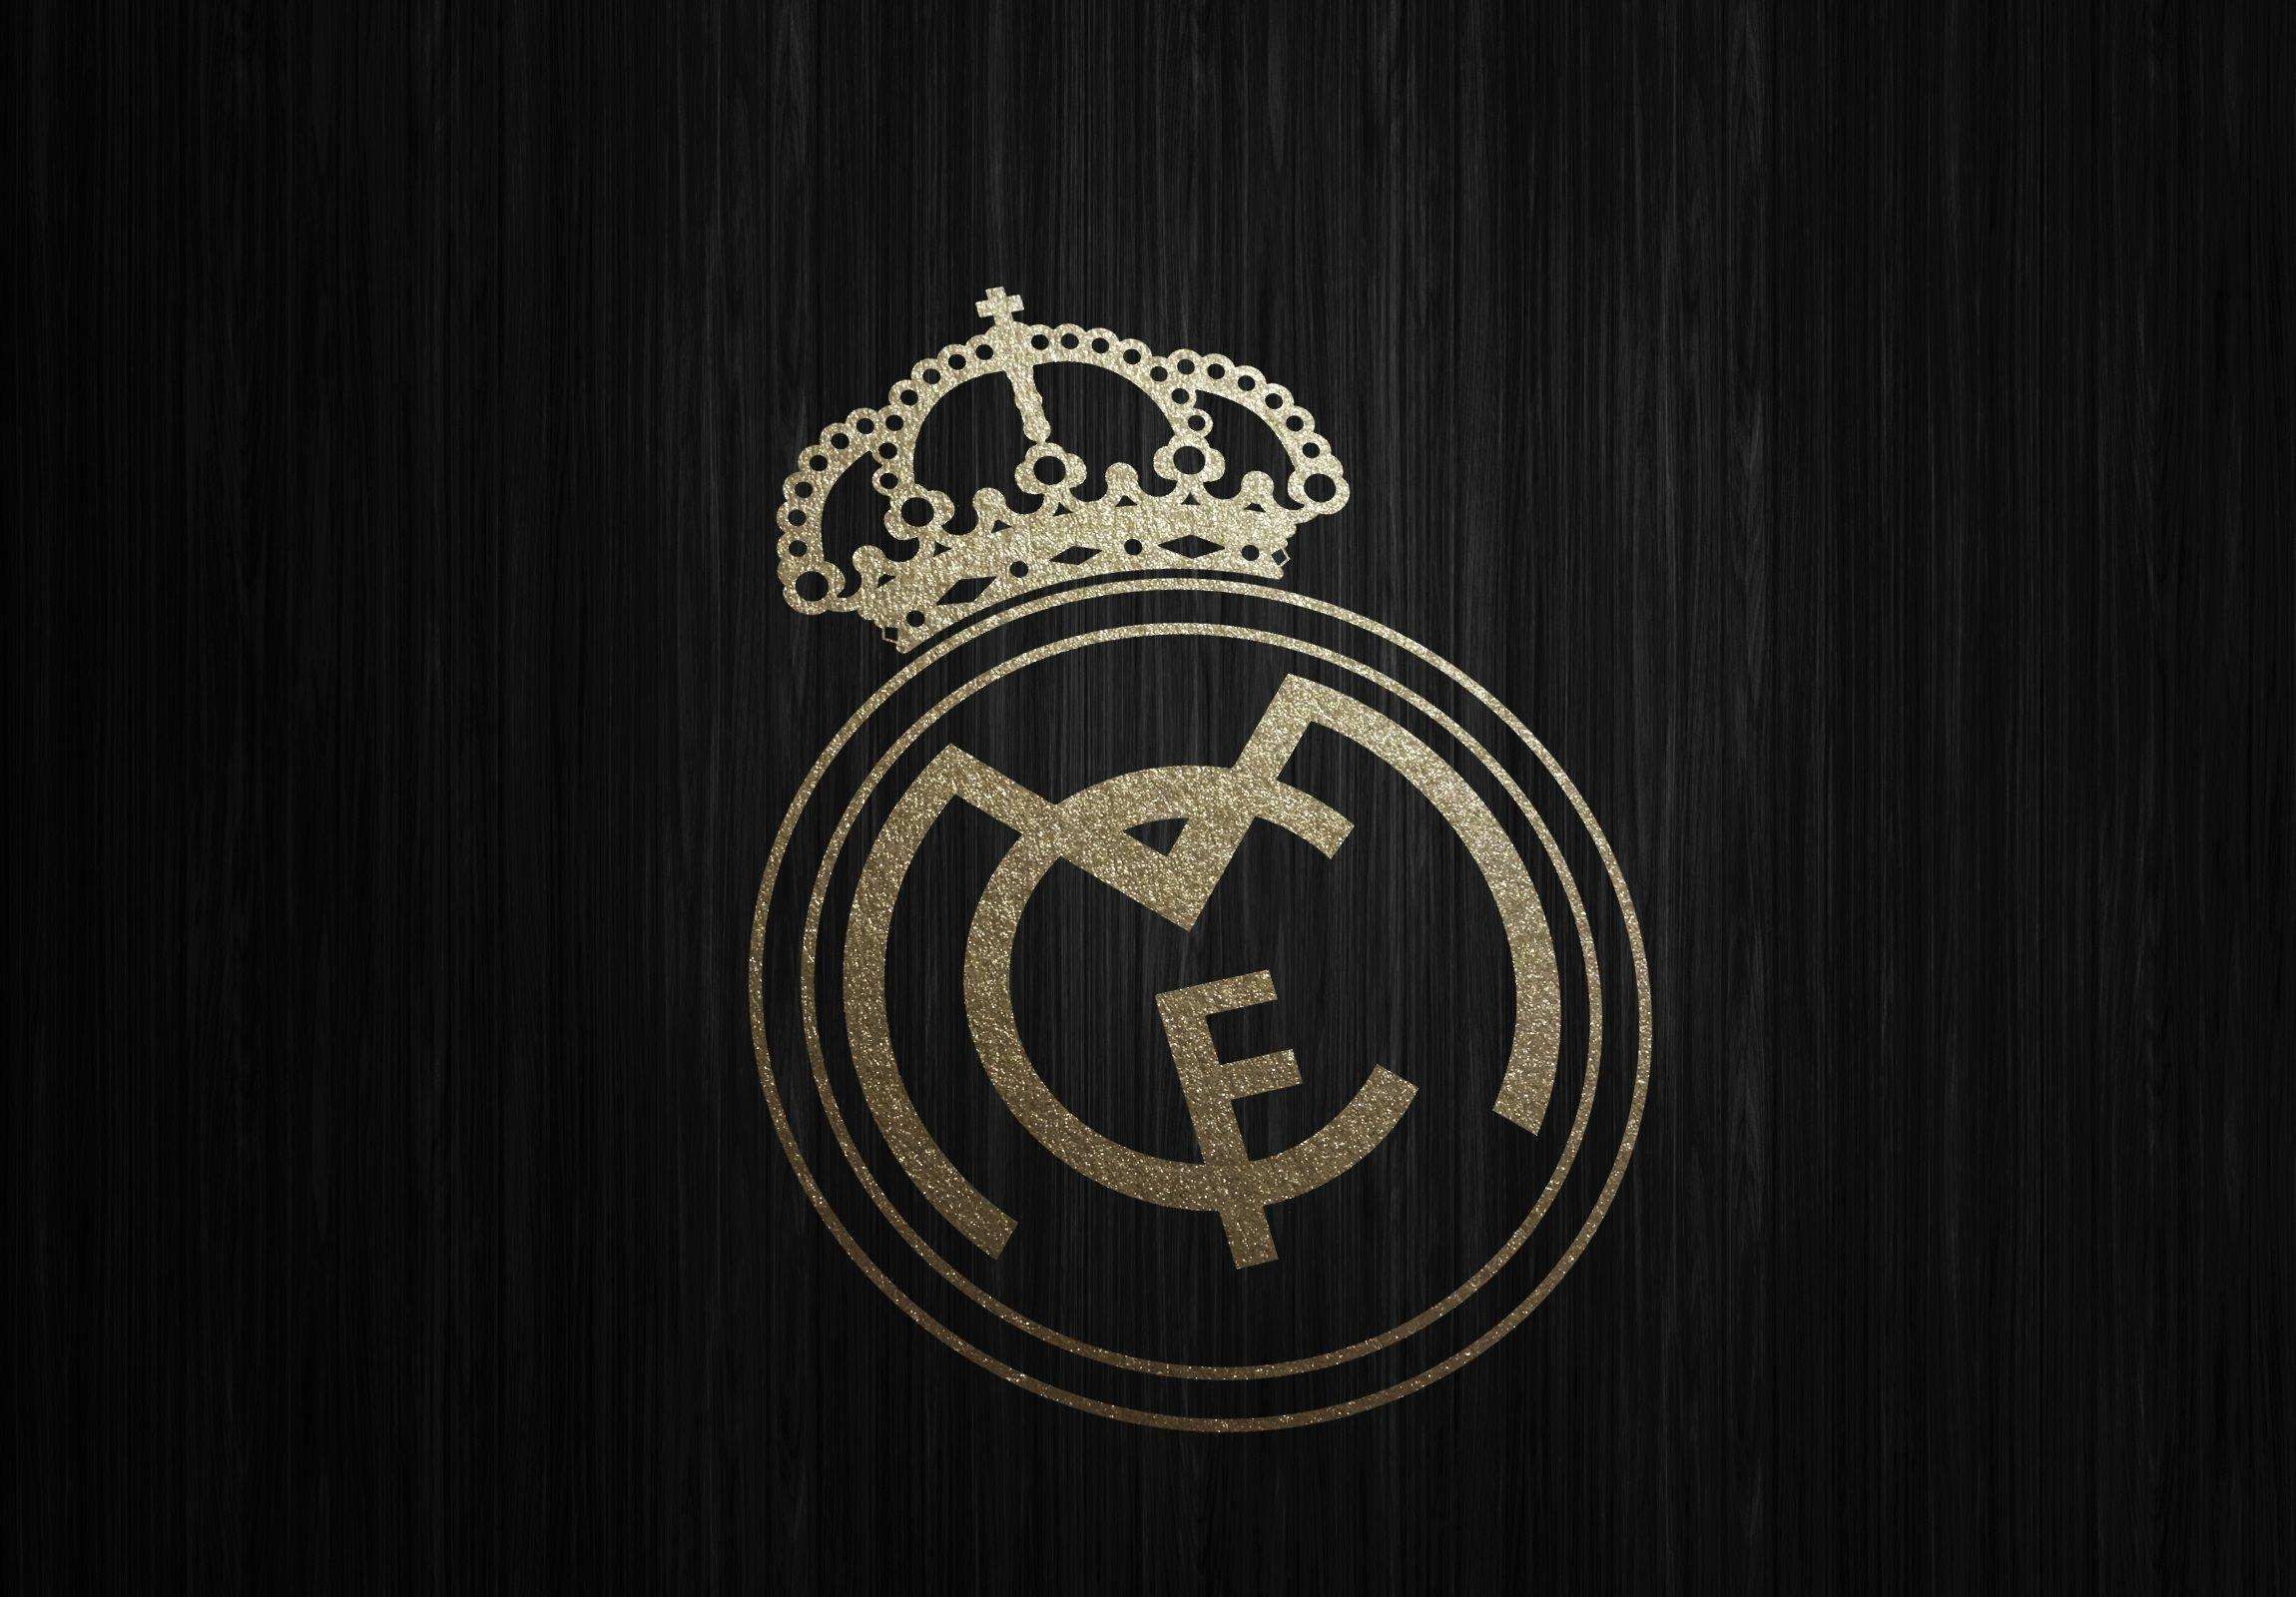 Real Madrid Logo Wallpaper HD 2016 | Wallpapers, Backgrounds .